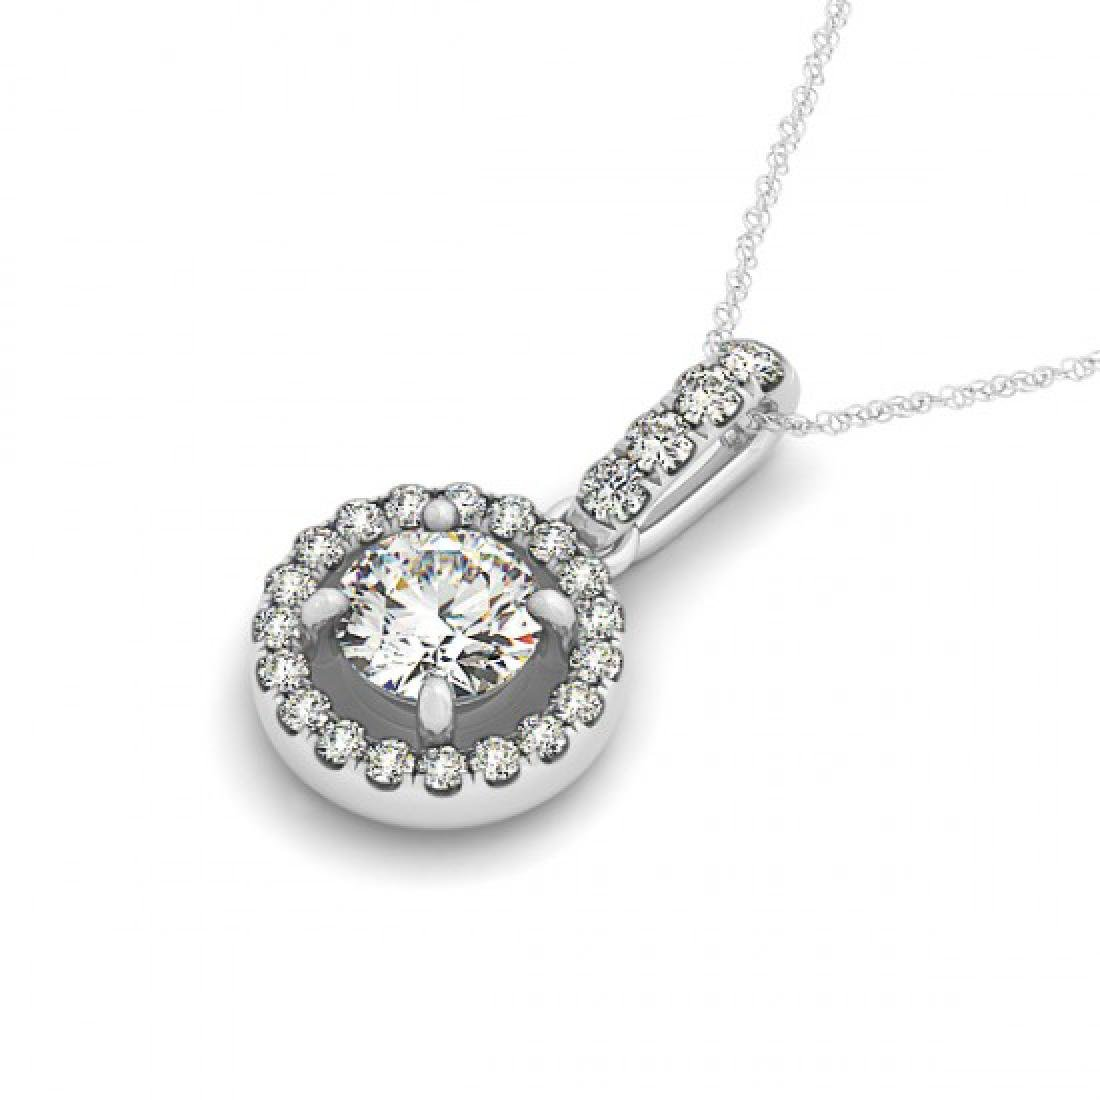 2.33 CTW Certified SI Diamond Solitaire Necklace 14K